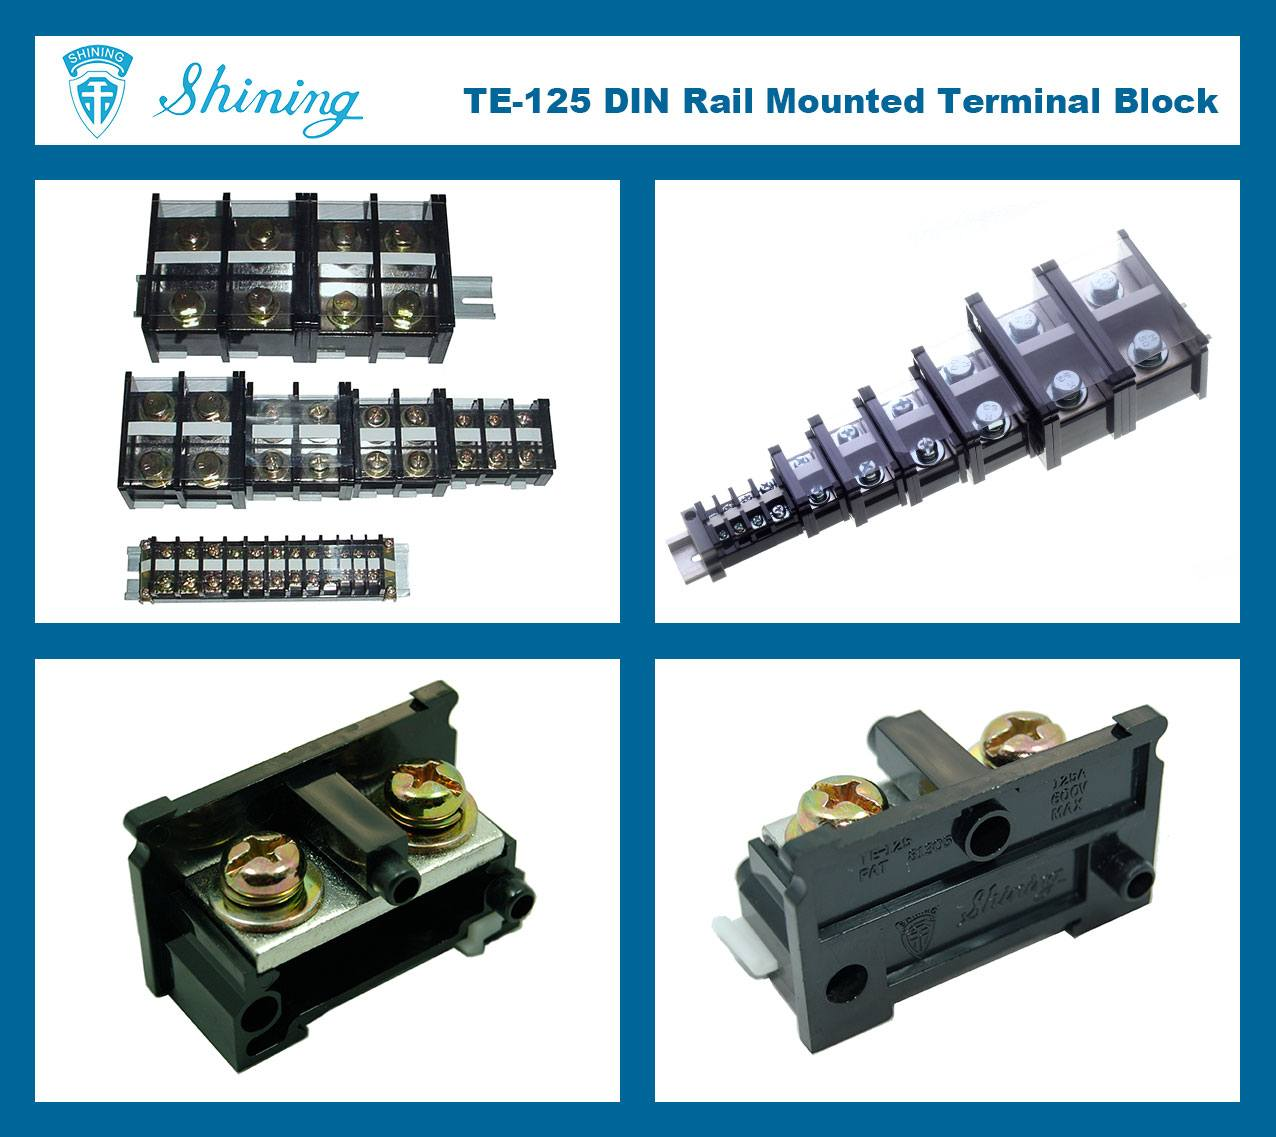 SHINING-TE-125 35mm Din Rail Mounted Assembly Type 600V 125A Terminal Strip